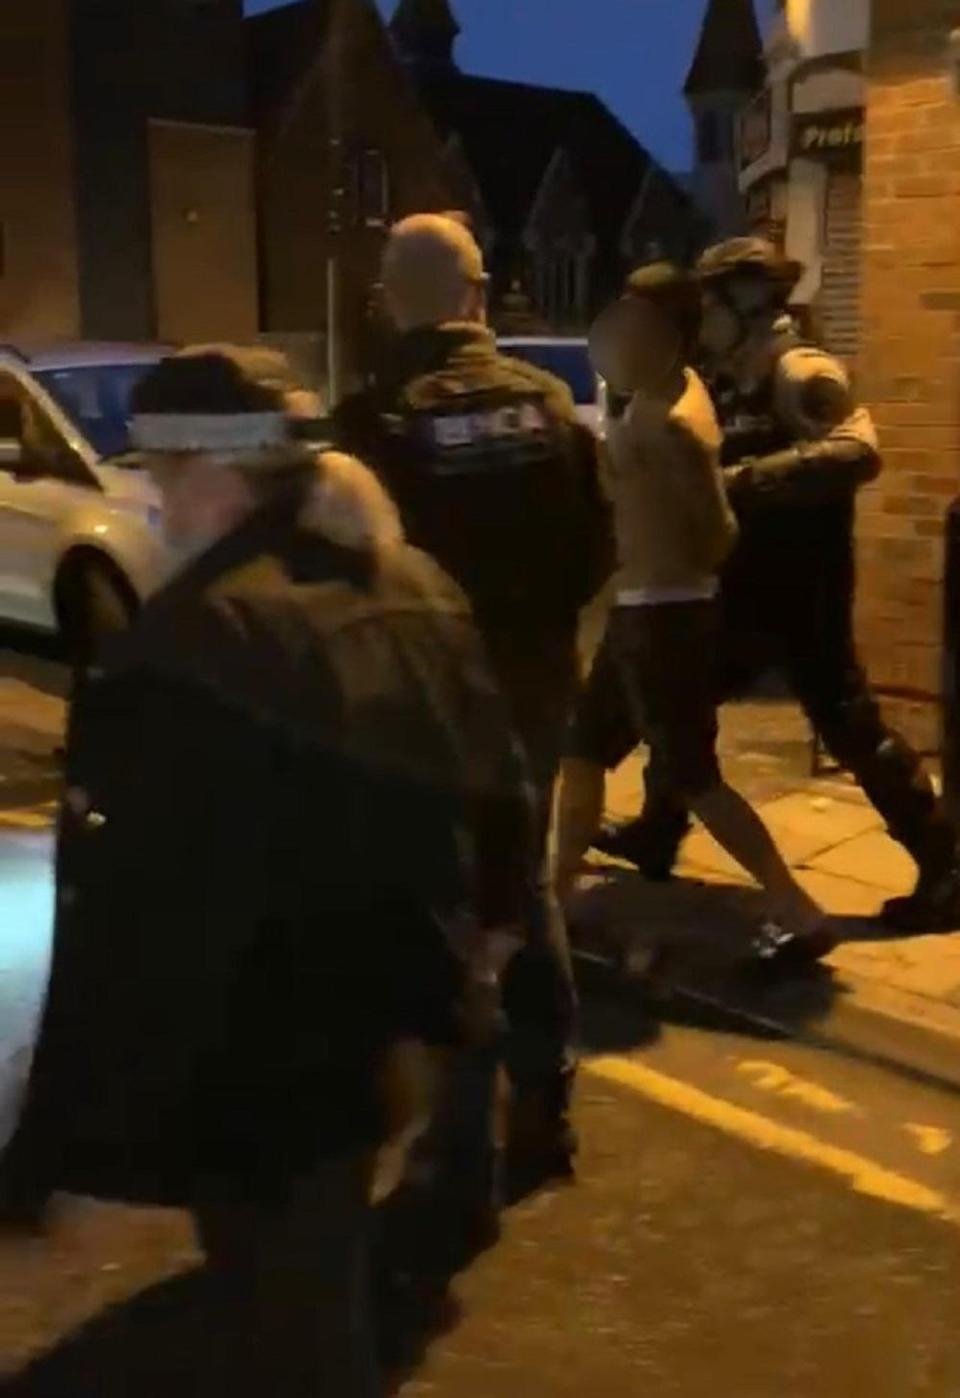 A suspect is lead away after the raid. Credit: National Crime Agency/PA